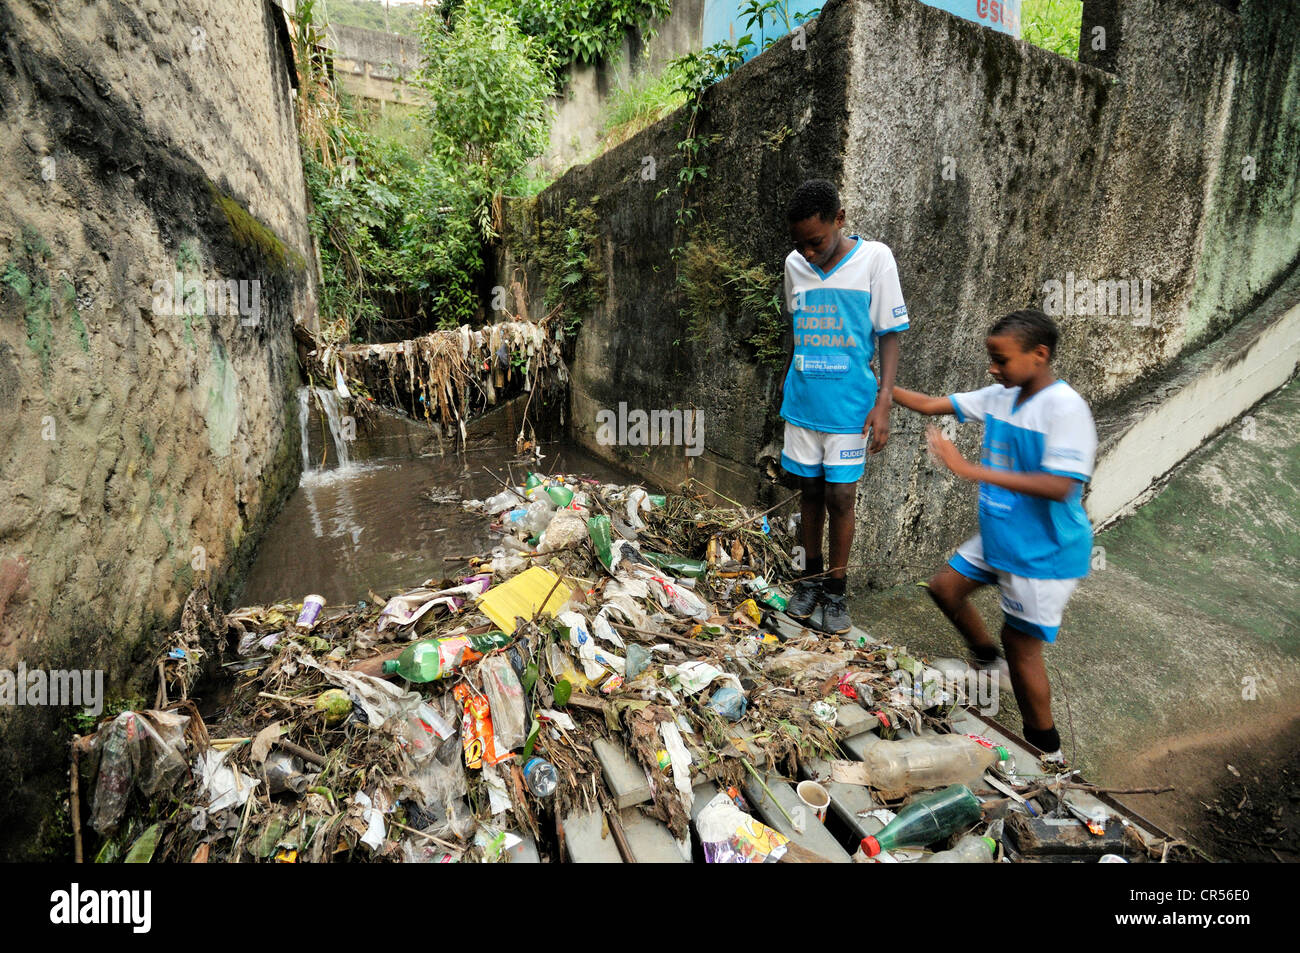 Residents of the slum district of Favela Morro da Formiga standing beside waste in an exposed sewer canal, Tijuca - Stock Image